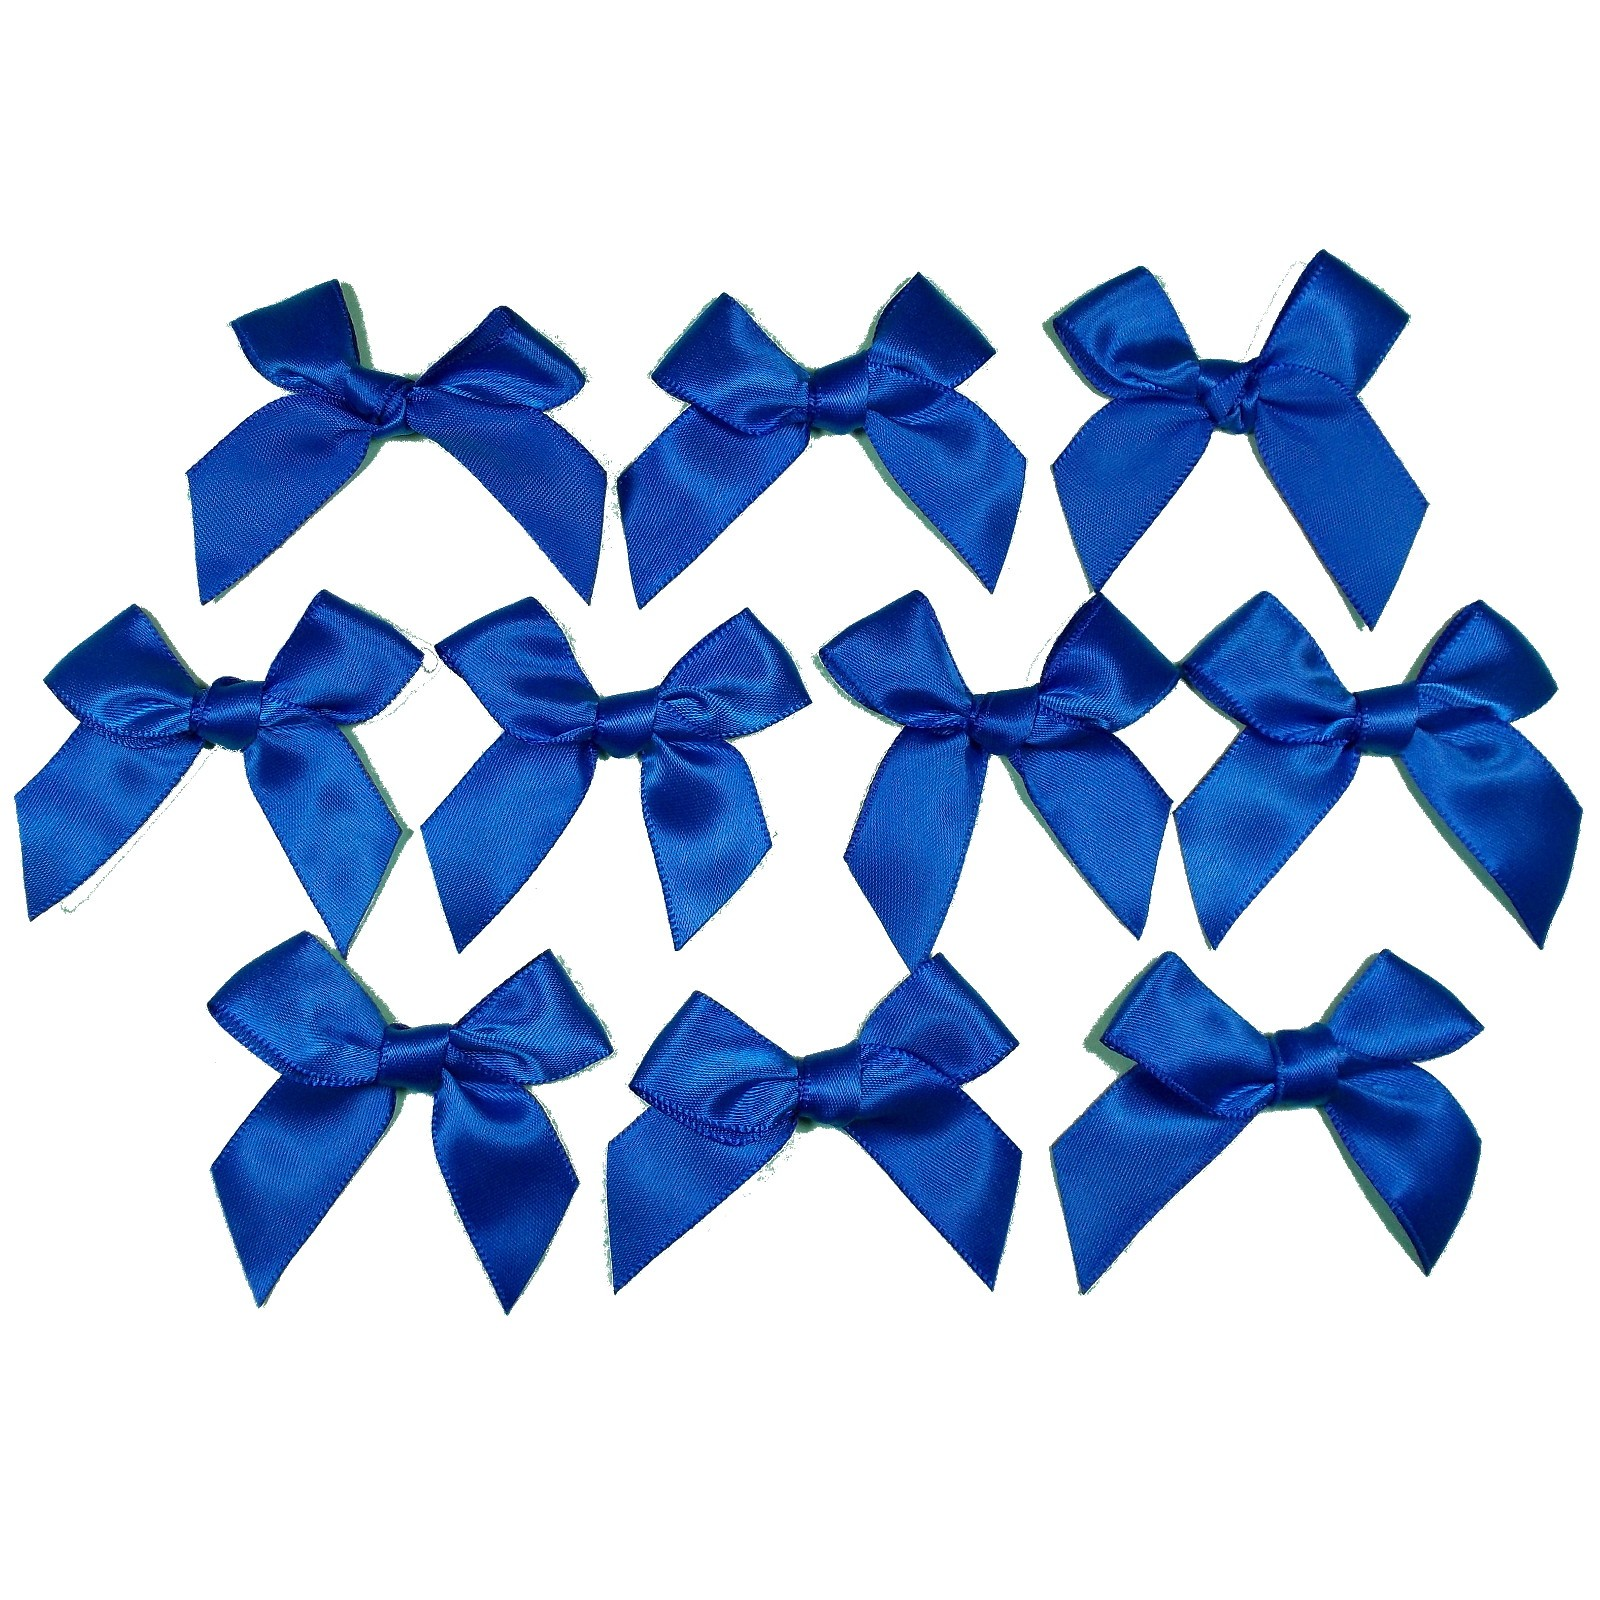 Satin Ribbon Bows approx 5.5cm wide Royal Blue Pack of 10